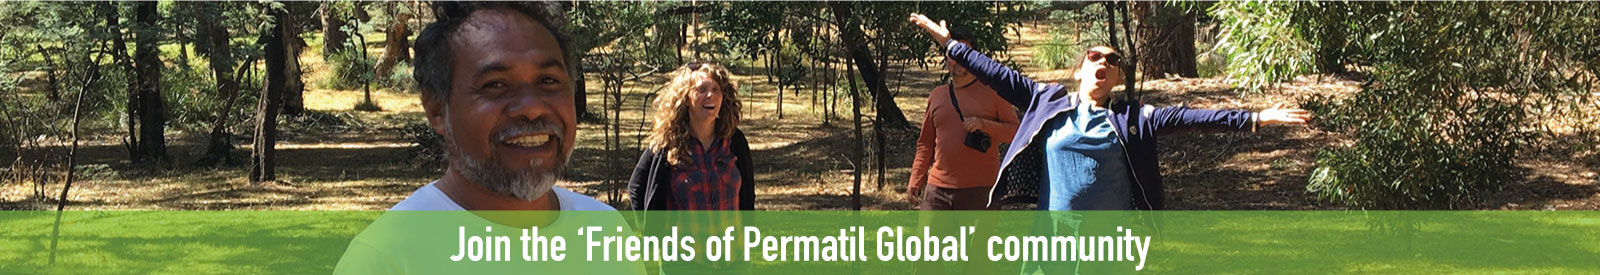 Friends of Permatil Global